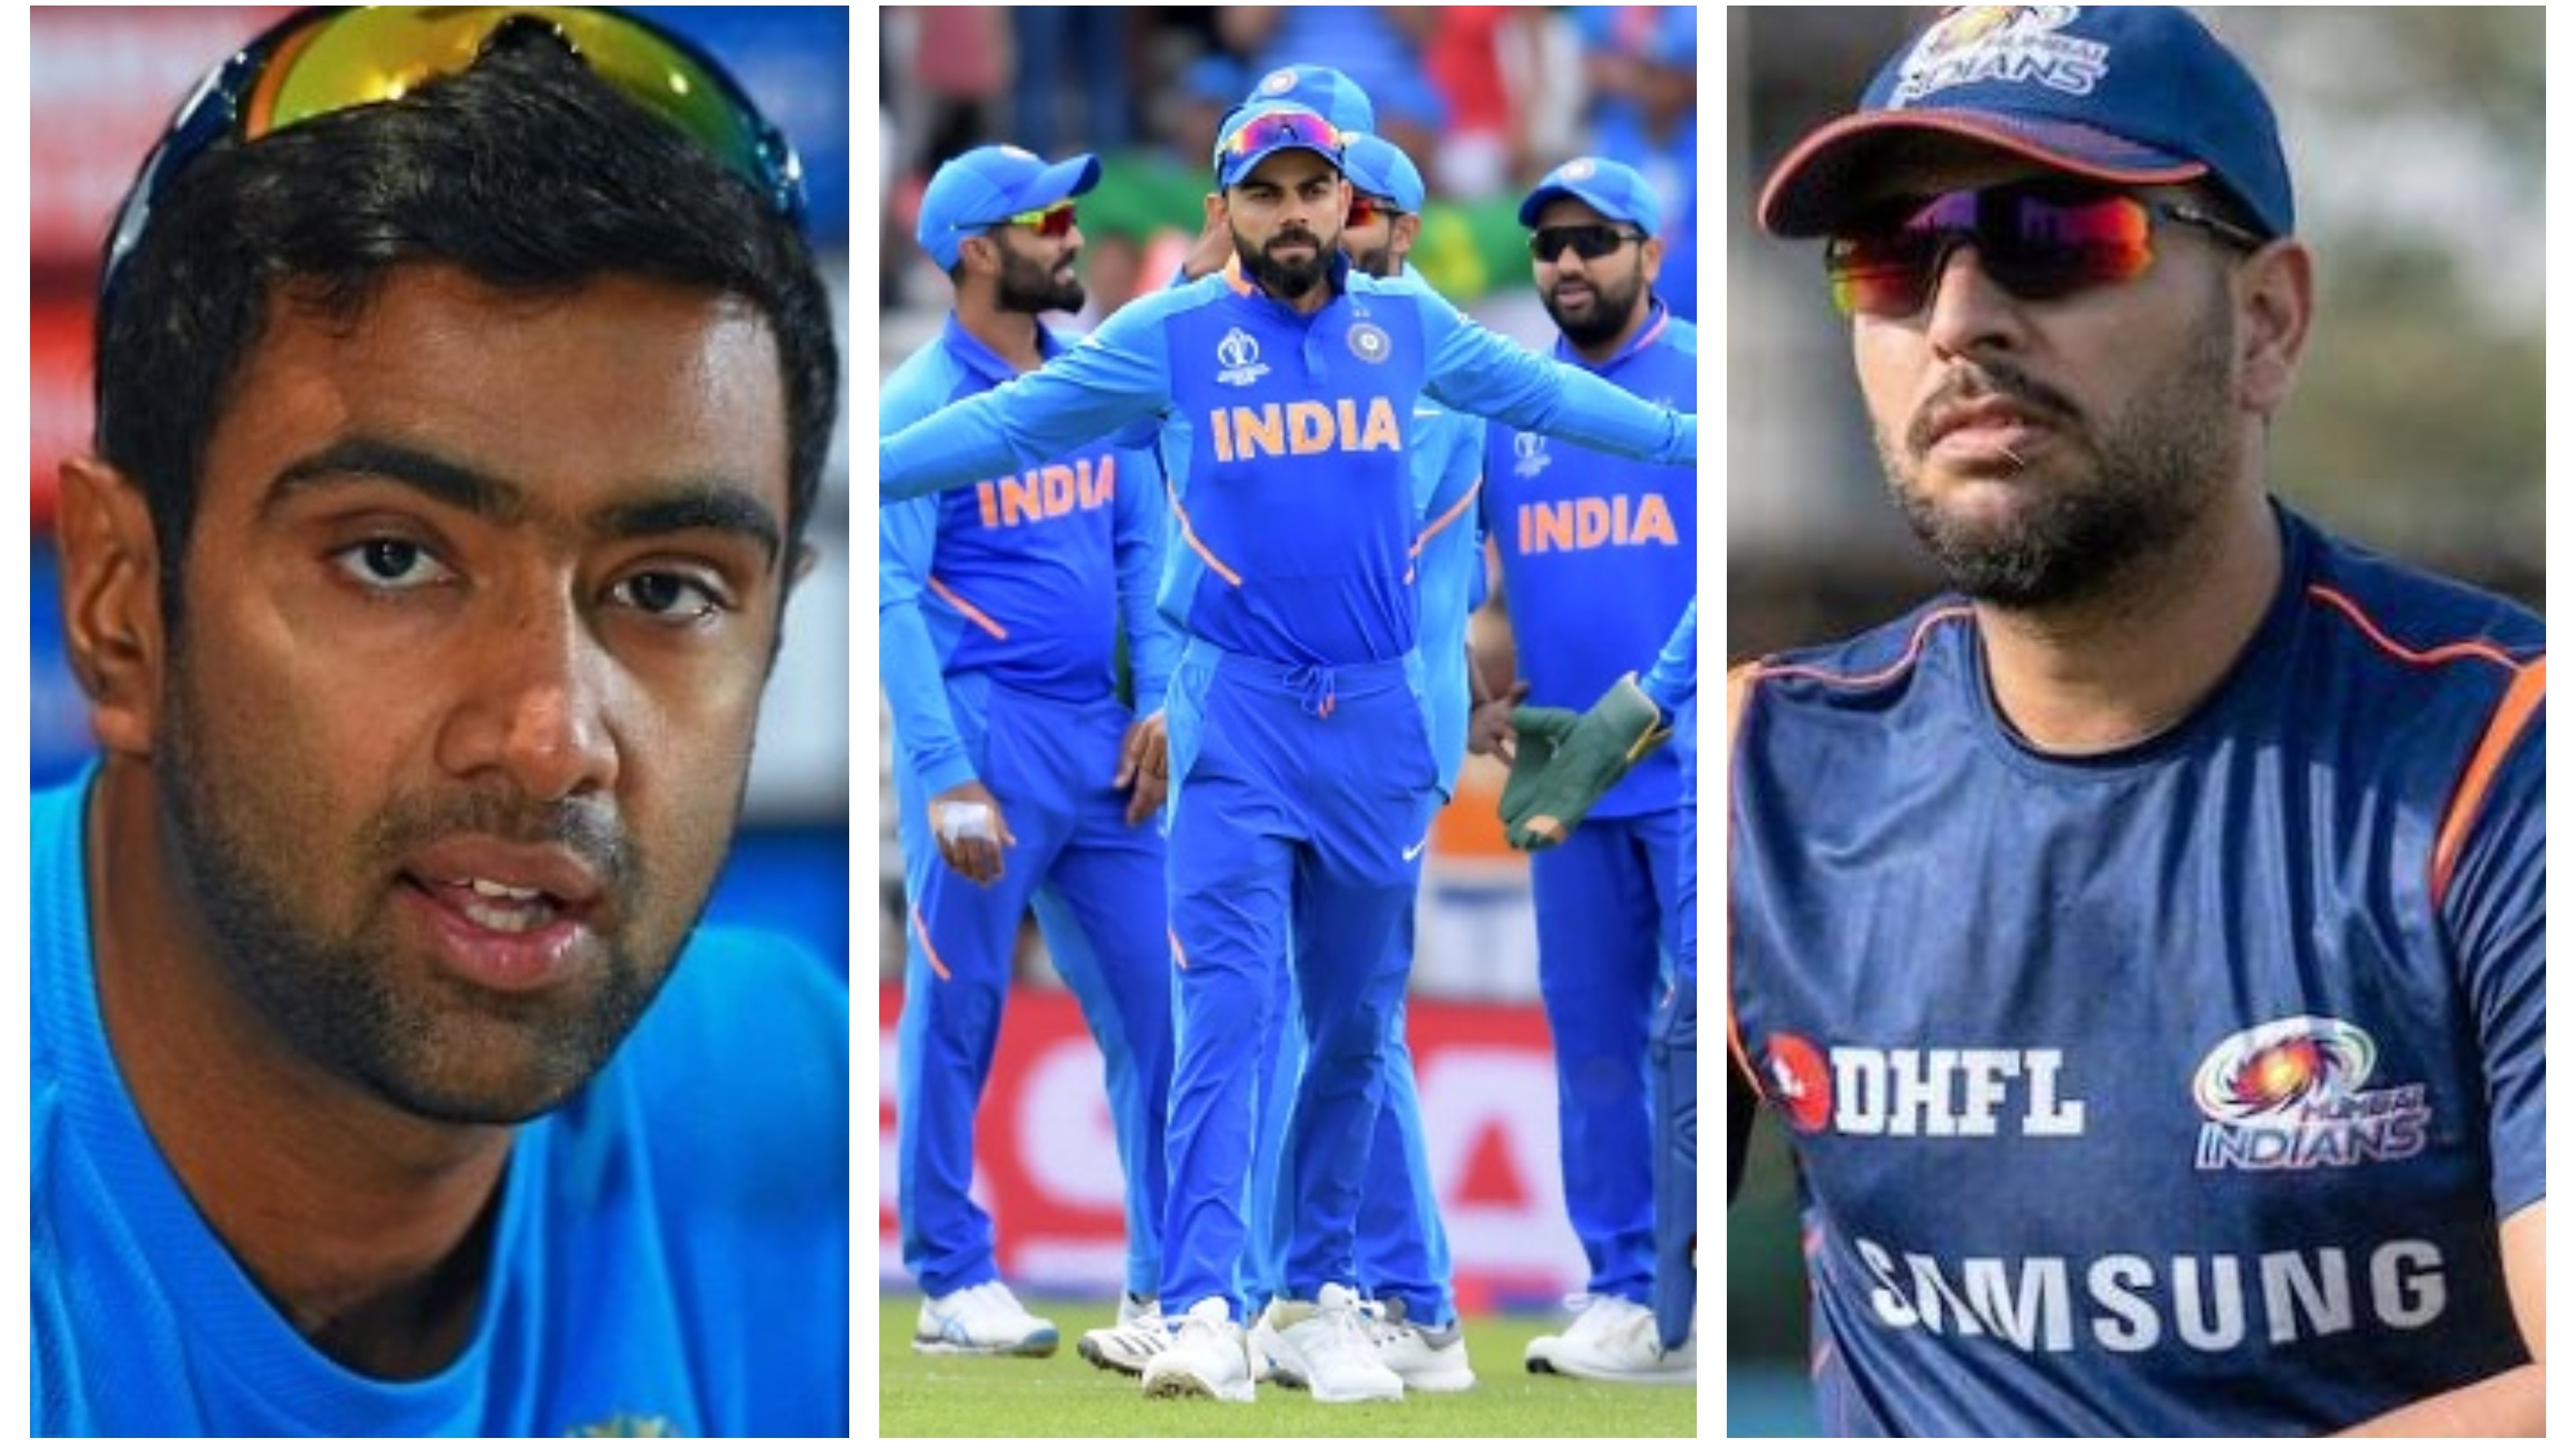 CWC 2019: Indian cricket fraternity sends positive vibes for Virat Kohli and company ahead of the semifinal